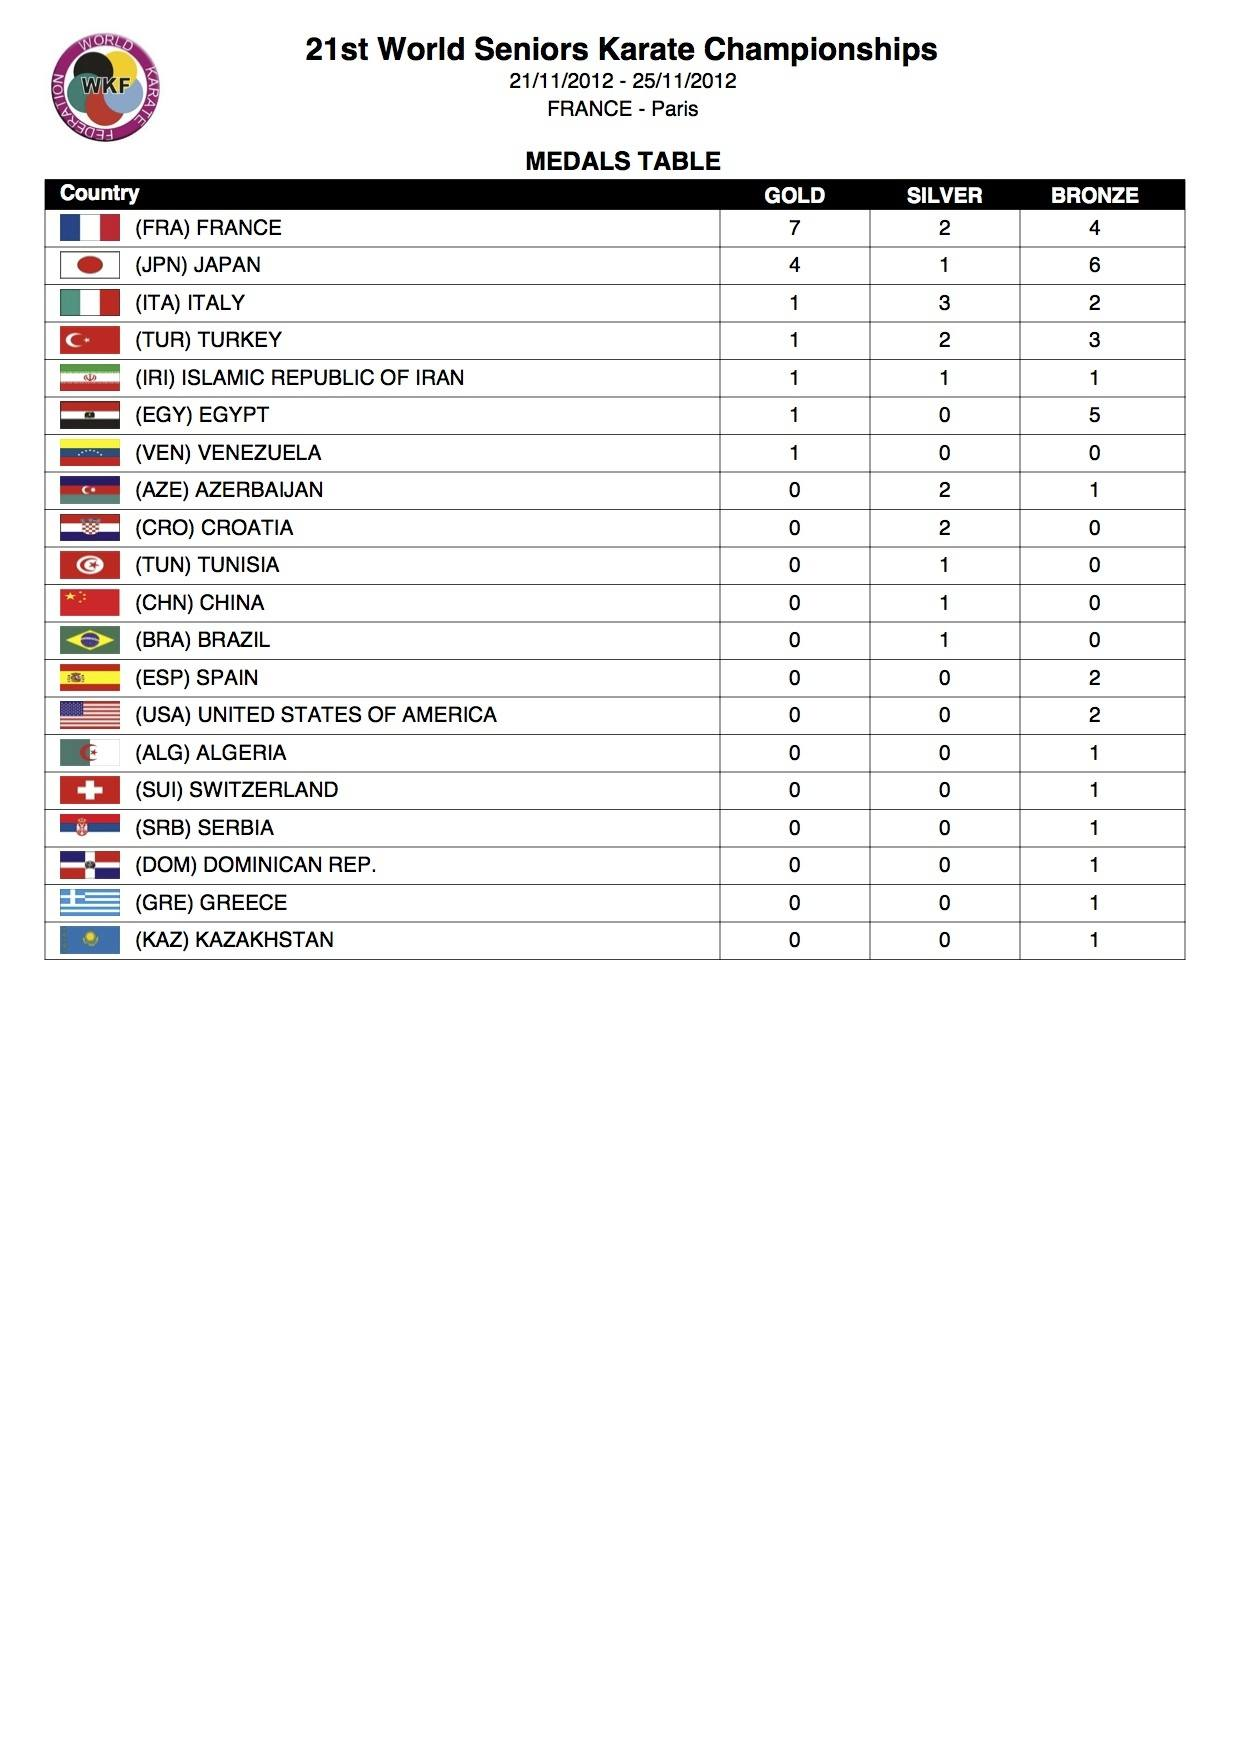 21st WKF Medal Count